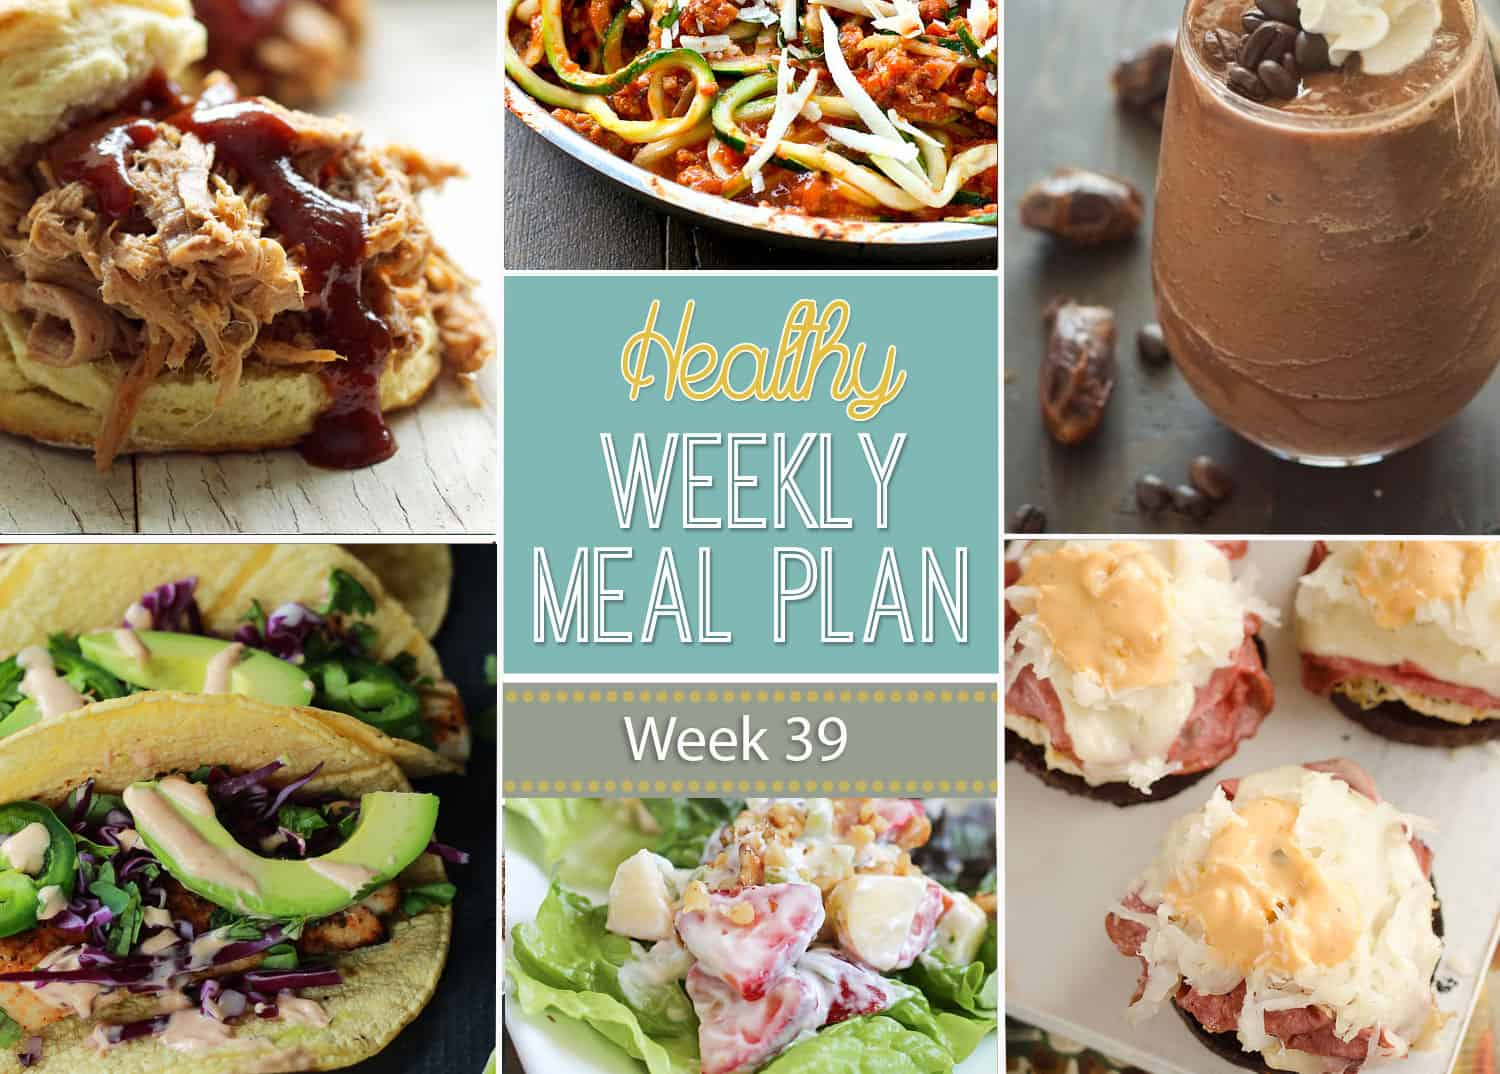 Healthy Weekly Meal Plan Week 39